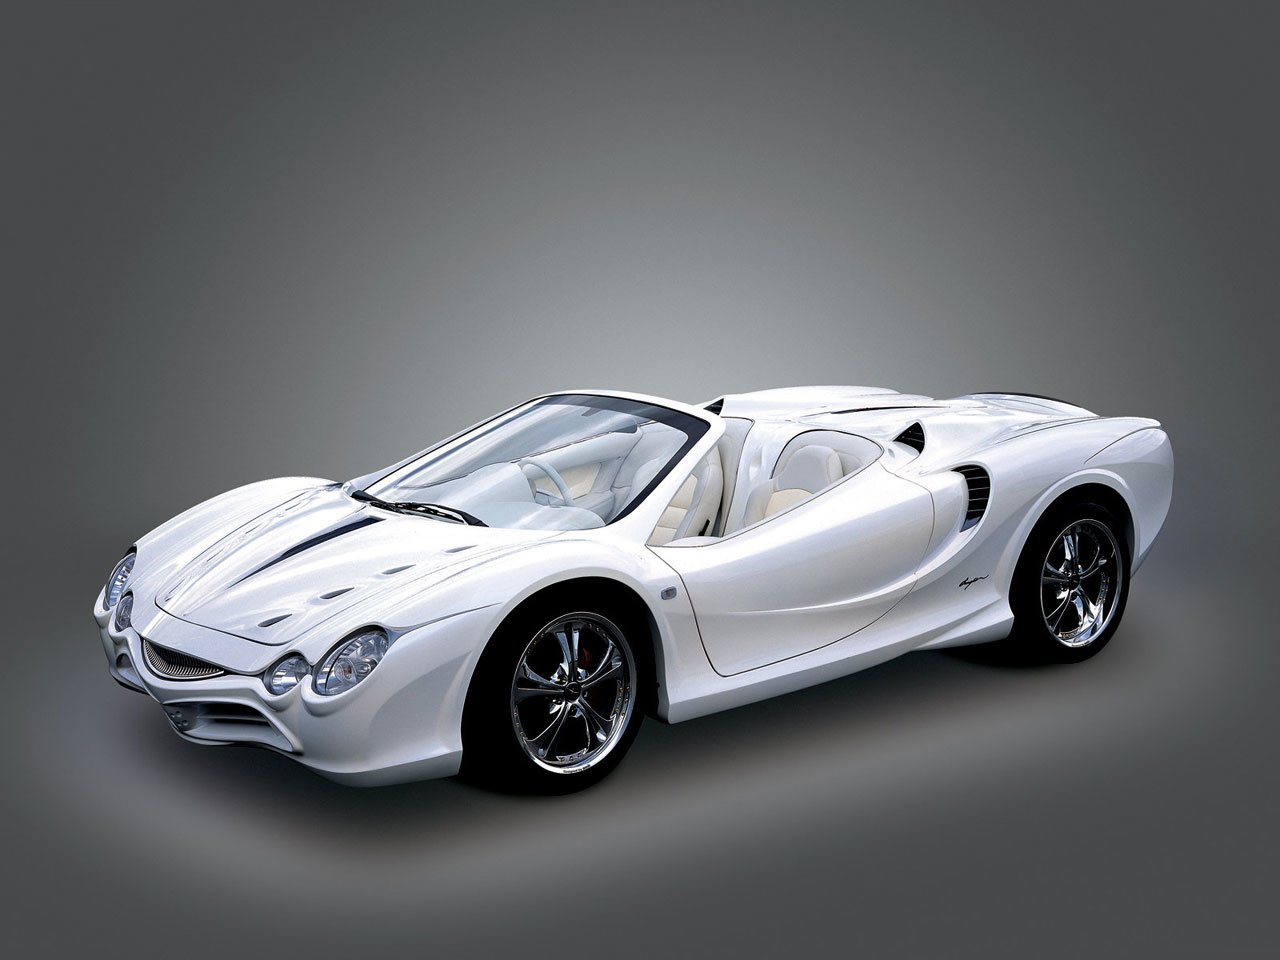 Latest The *Gly Car Blog Mitsuoka Orochi Dedicated To The *Gly Cars Of This World Free Download